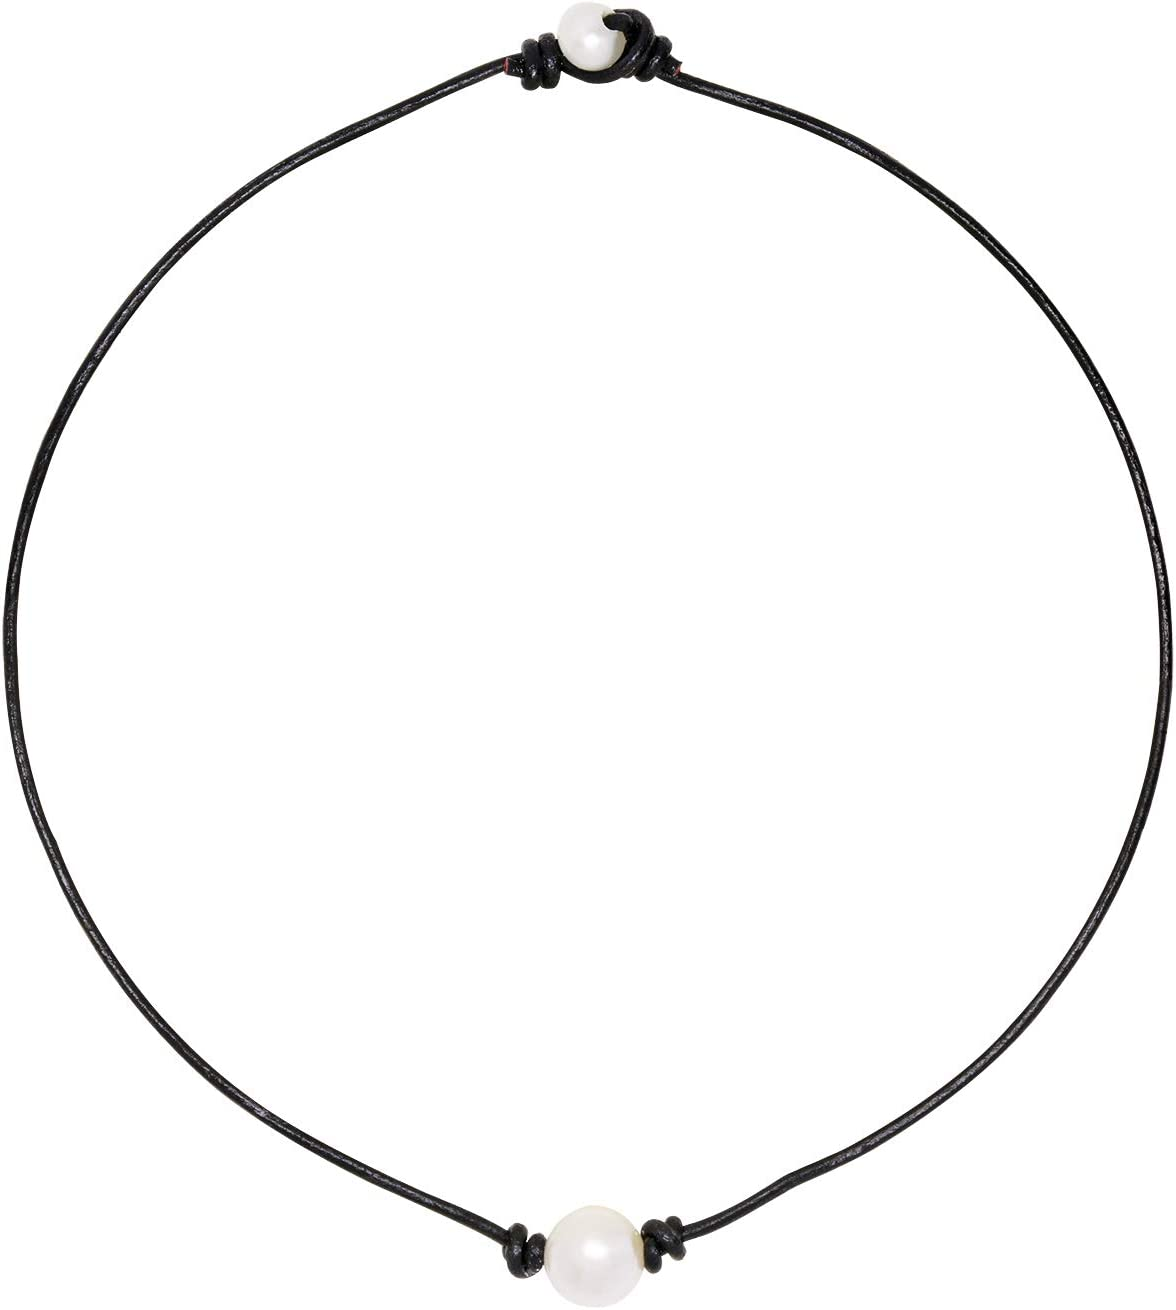 Penta Angel Single Pearl Bead Choker Necklace Natural White Freshwater Pearl Genuine Leather Cord Collar Necklace Chain Jewelry for Women Girls